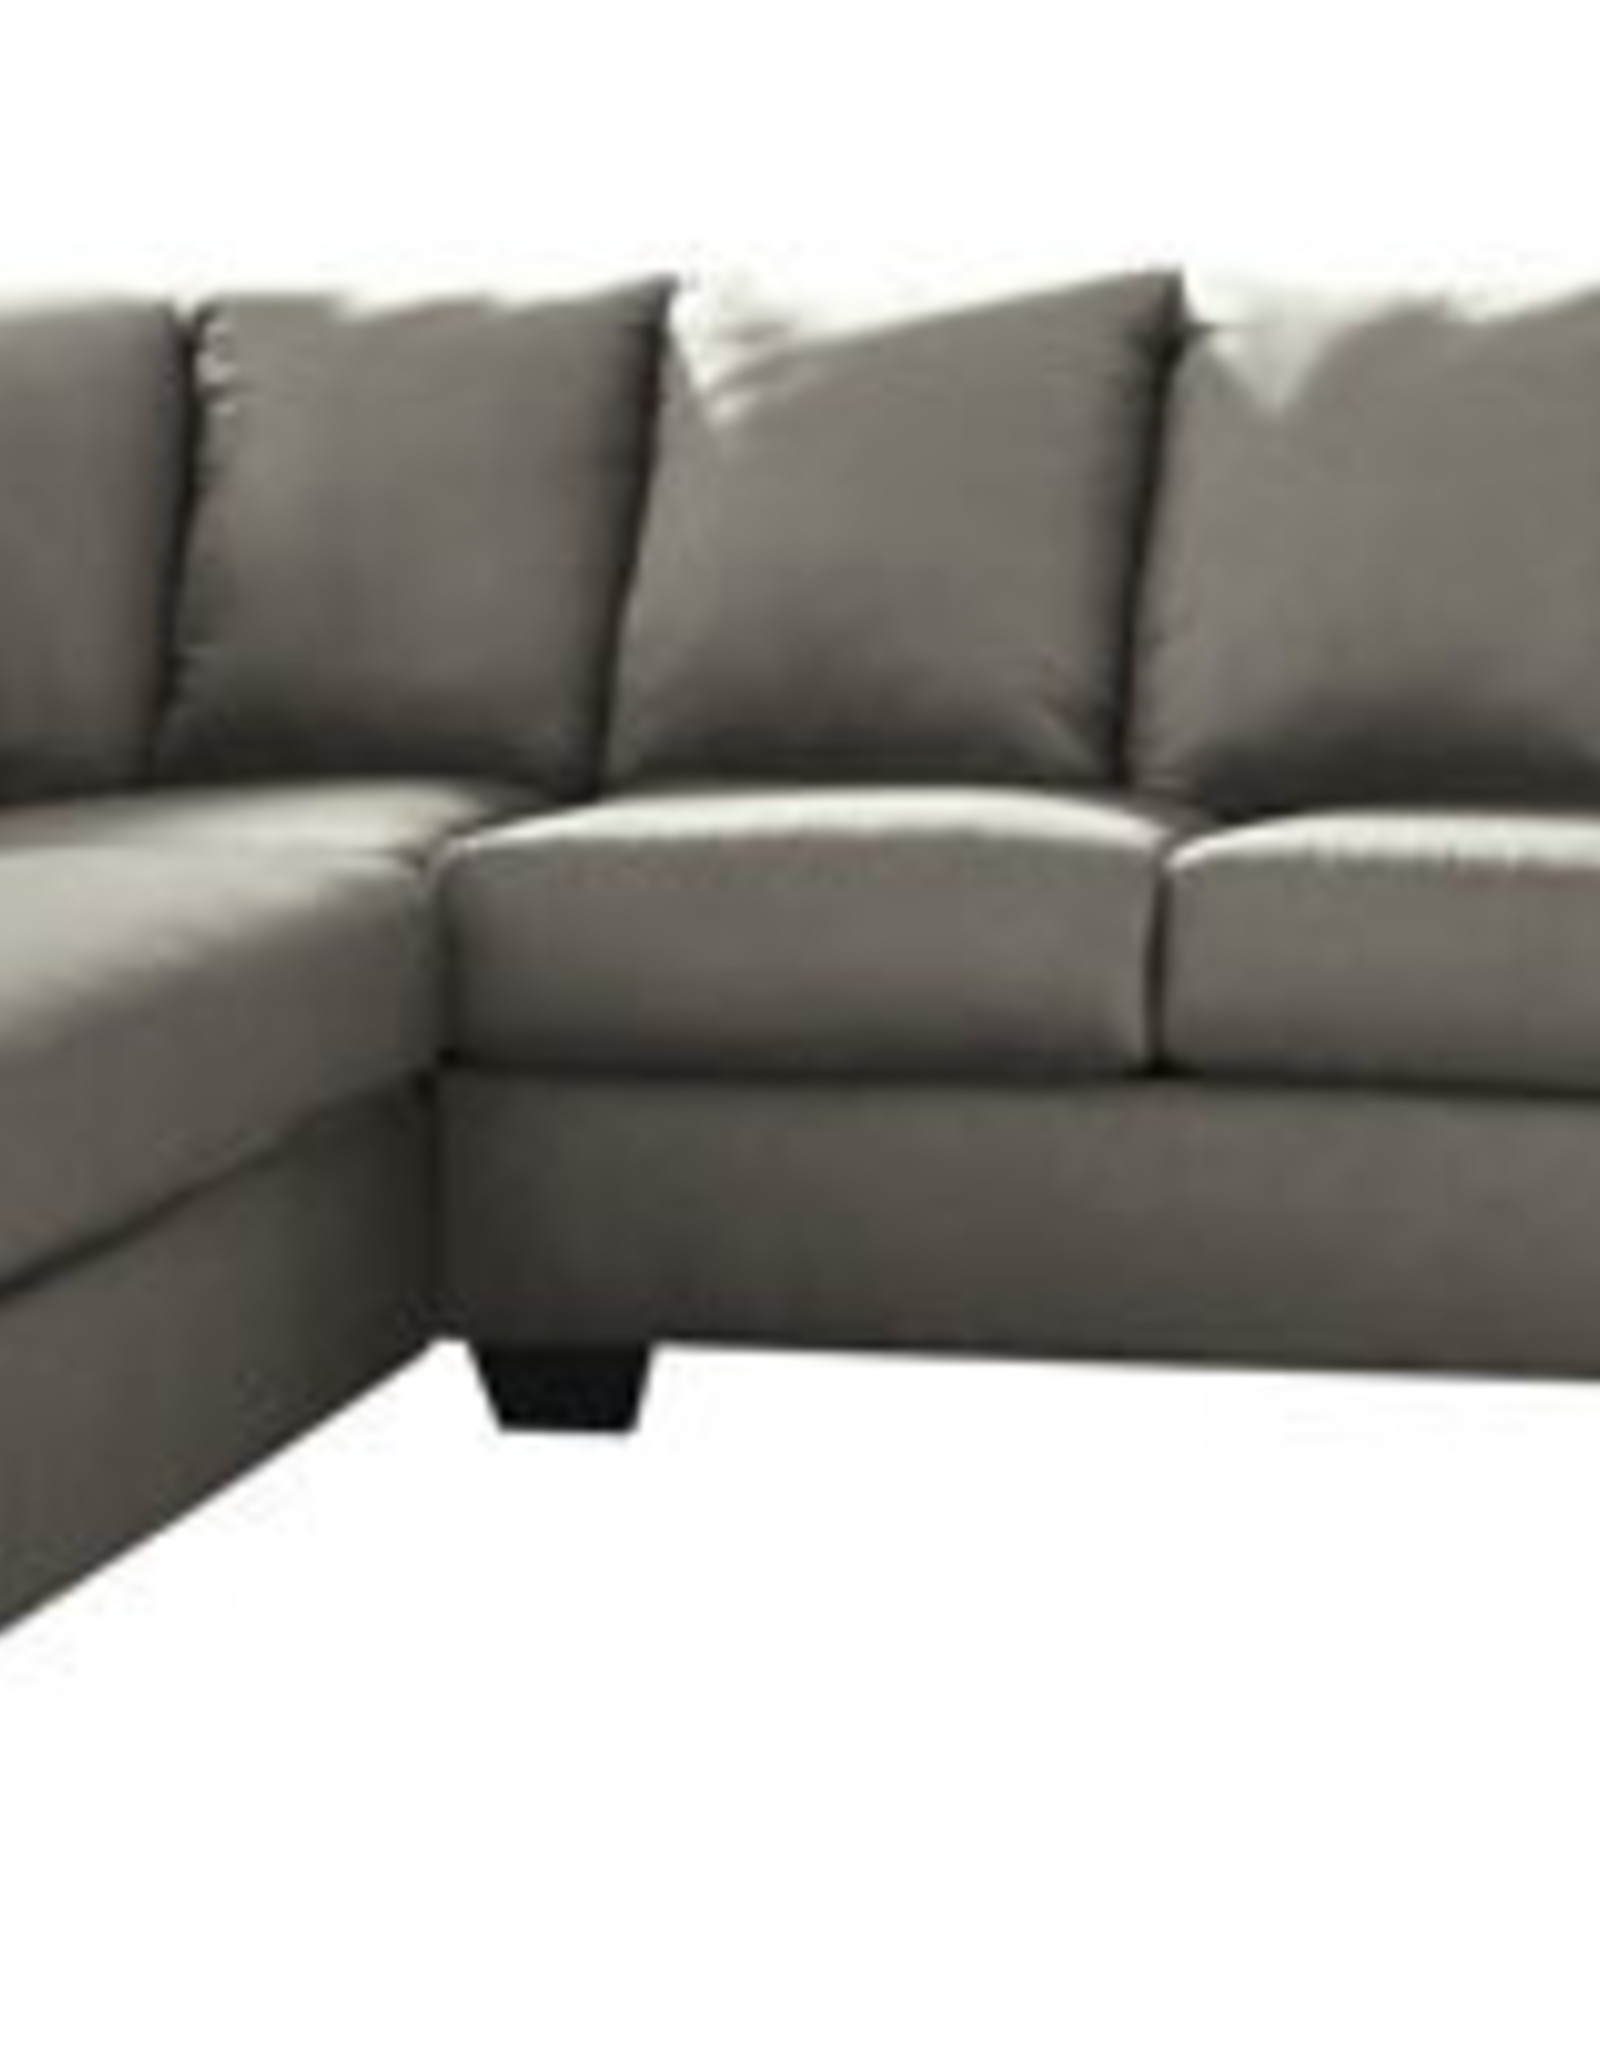 Darcy Sofa (Cobblestone) Displayed in Showroom in Black